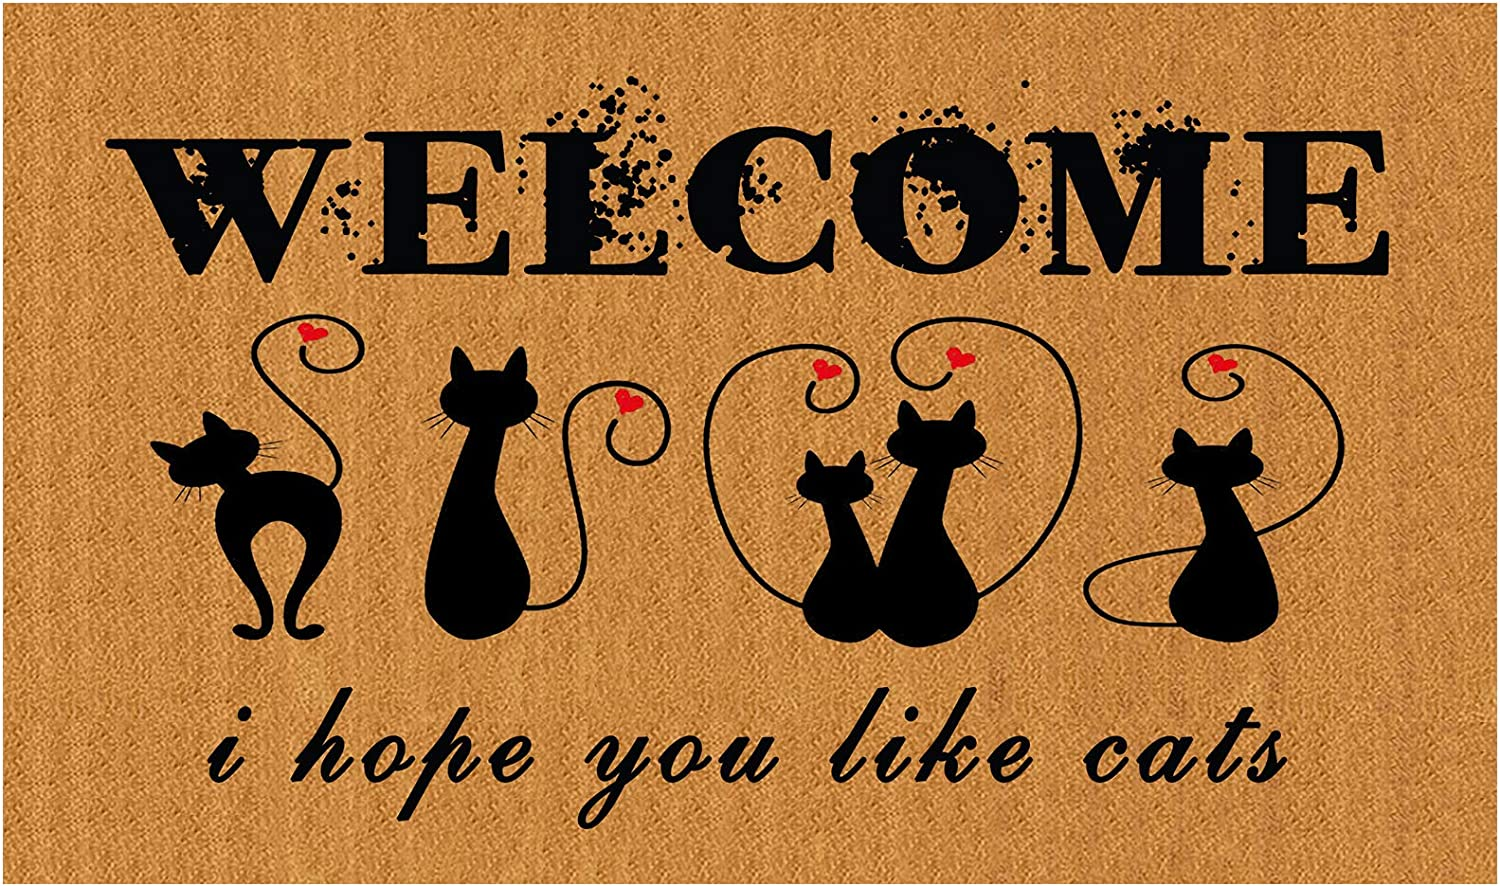 """genaric Welcome Doormat(29.5"""" x 17.7"""") Non-Slip mat Funny mat Personalized Home Decor mats for in Door Kitchen Entrance Rugs and Mats (Welcome i Hope You Like Cats)"""